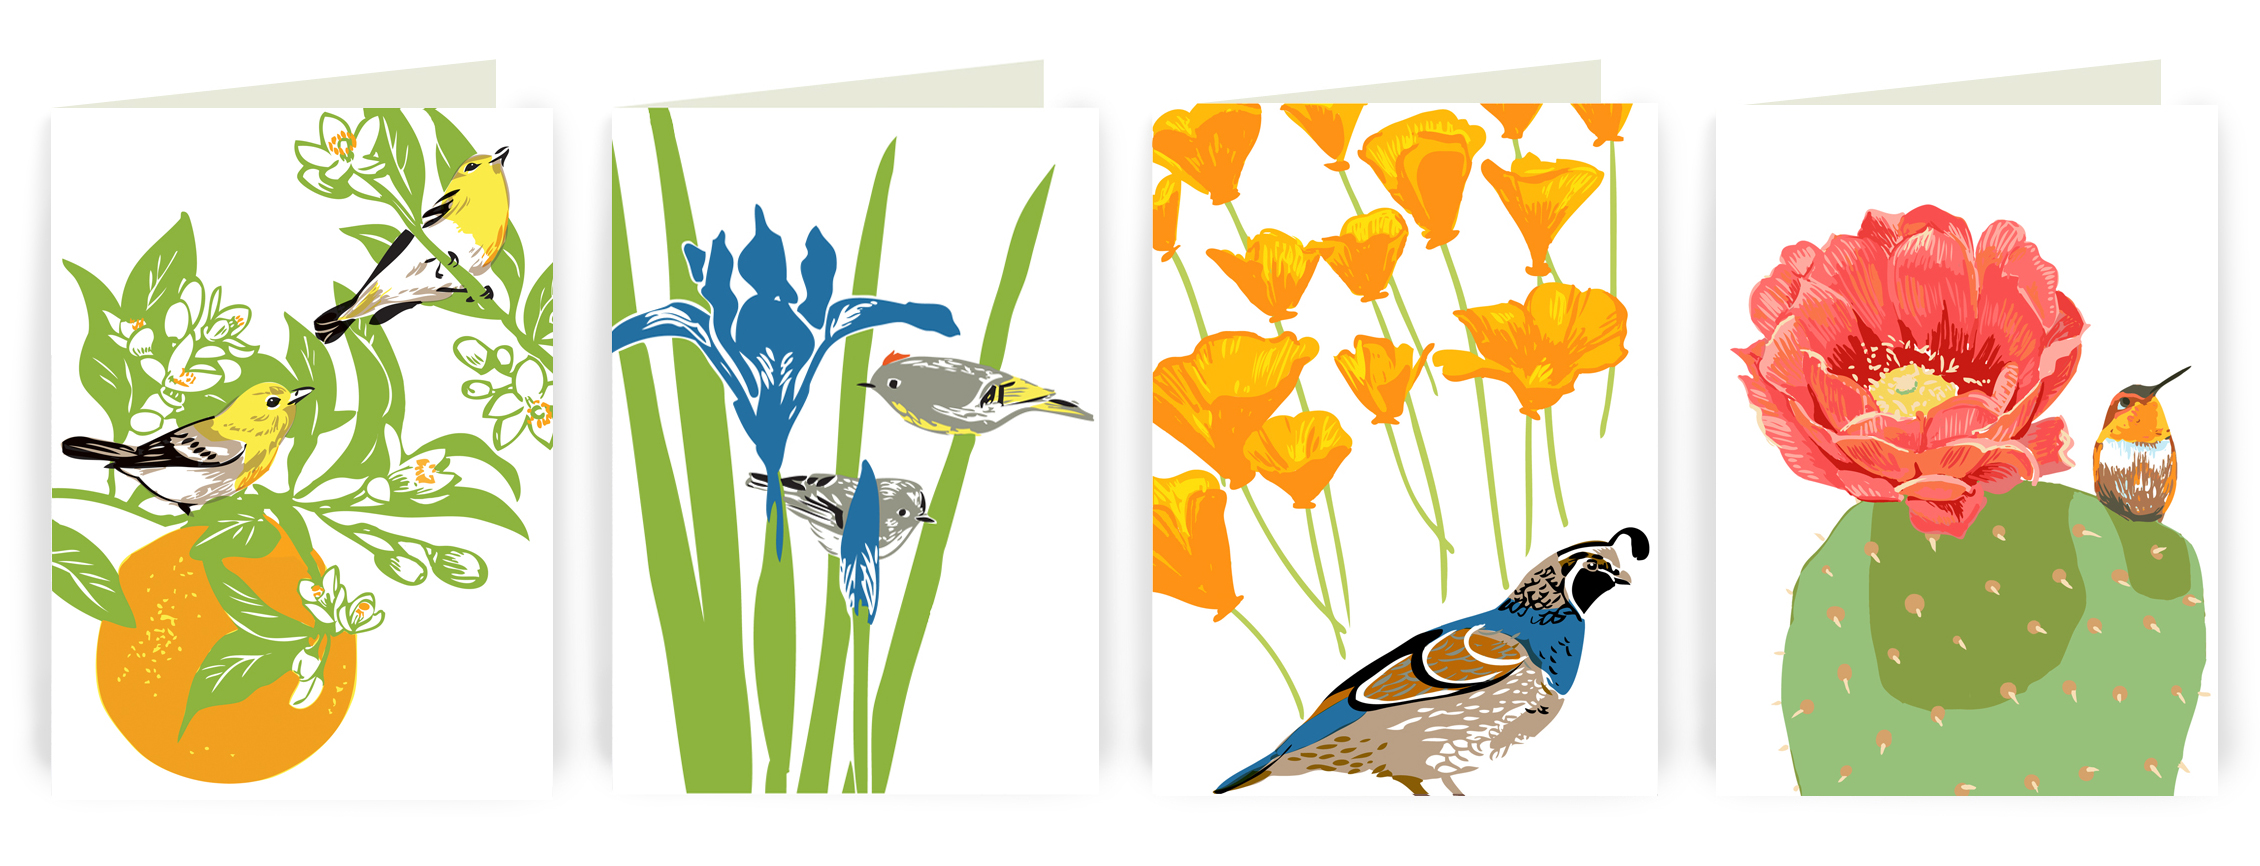 FEATURED PROJECT: Birds and flowers